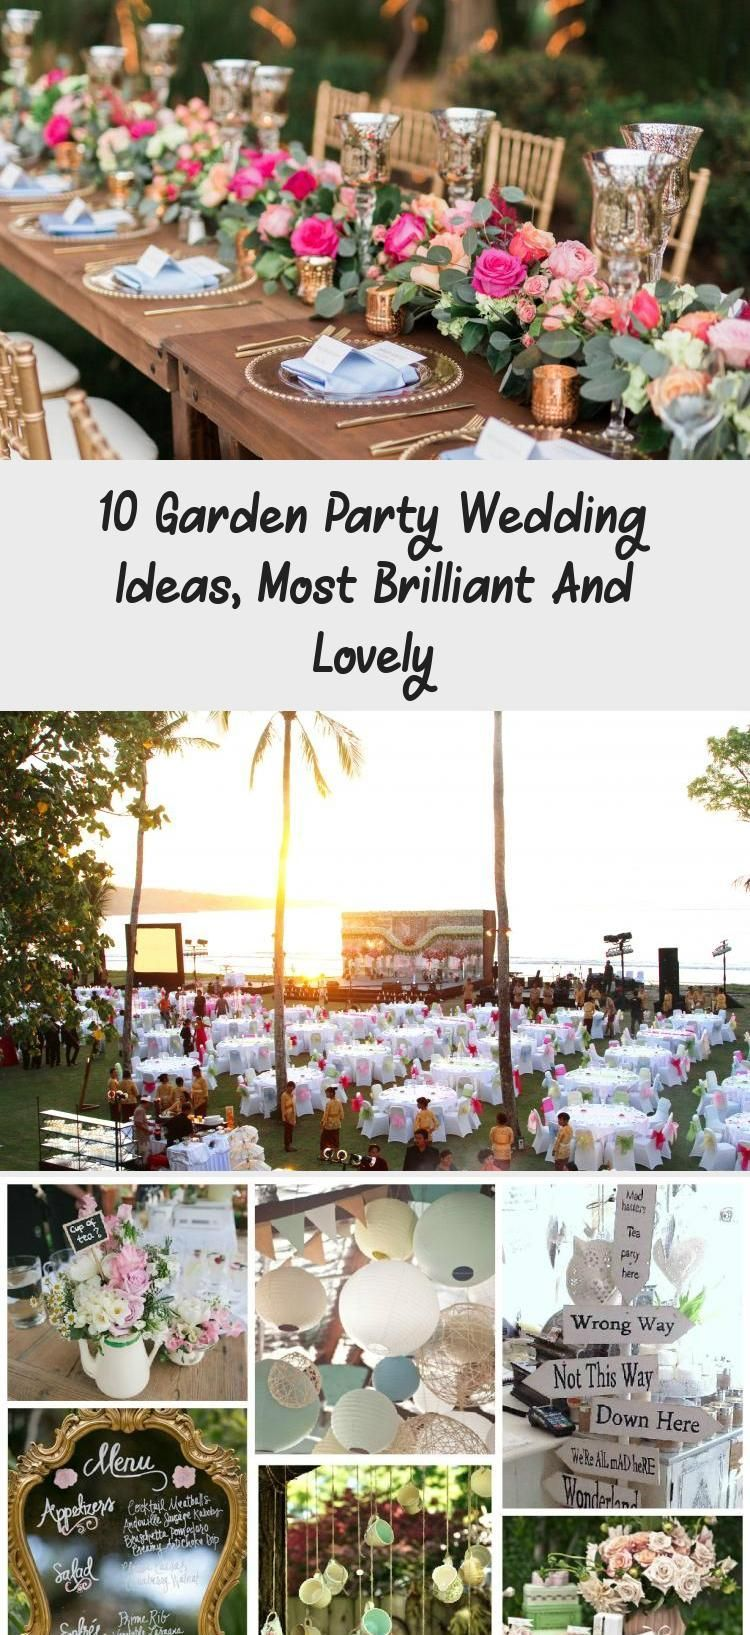 They Danced All Night Long At This Romantic Garden Chic Wedding with regard to Garden Party Wedding Ideas garden wedding dress 10 Garden Party Wedding Ideas Most Brillian...